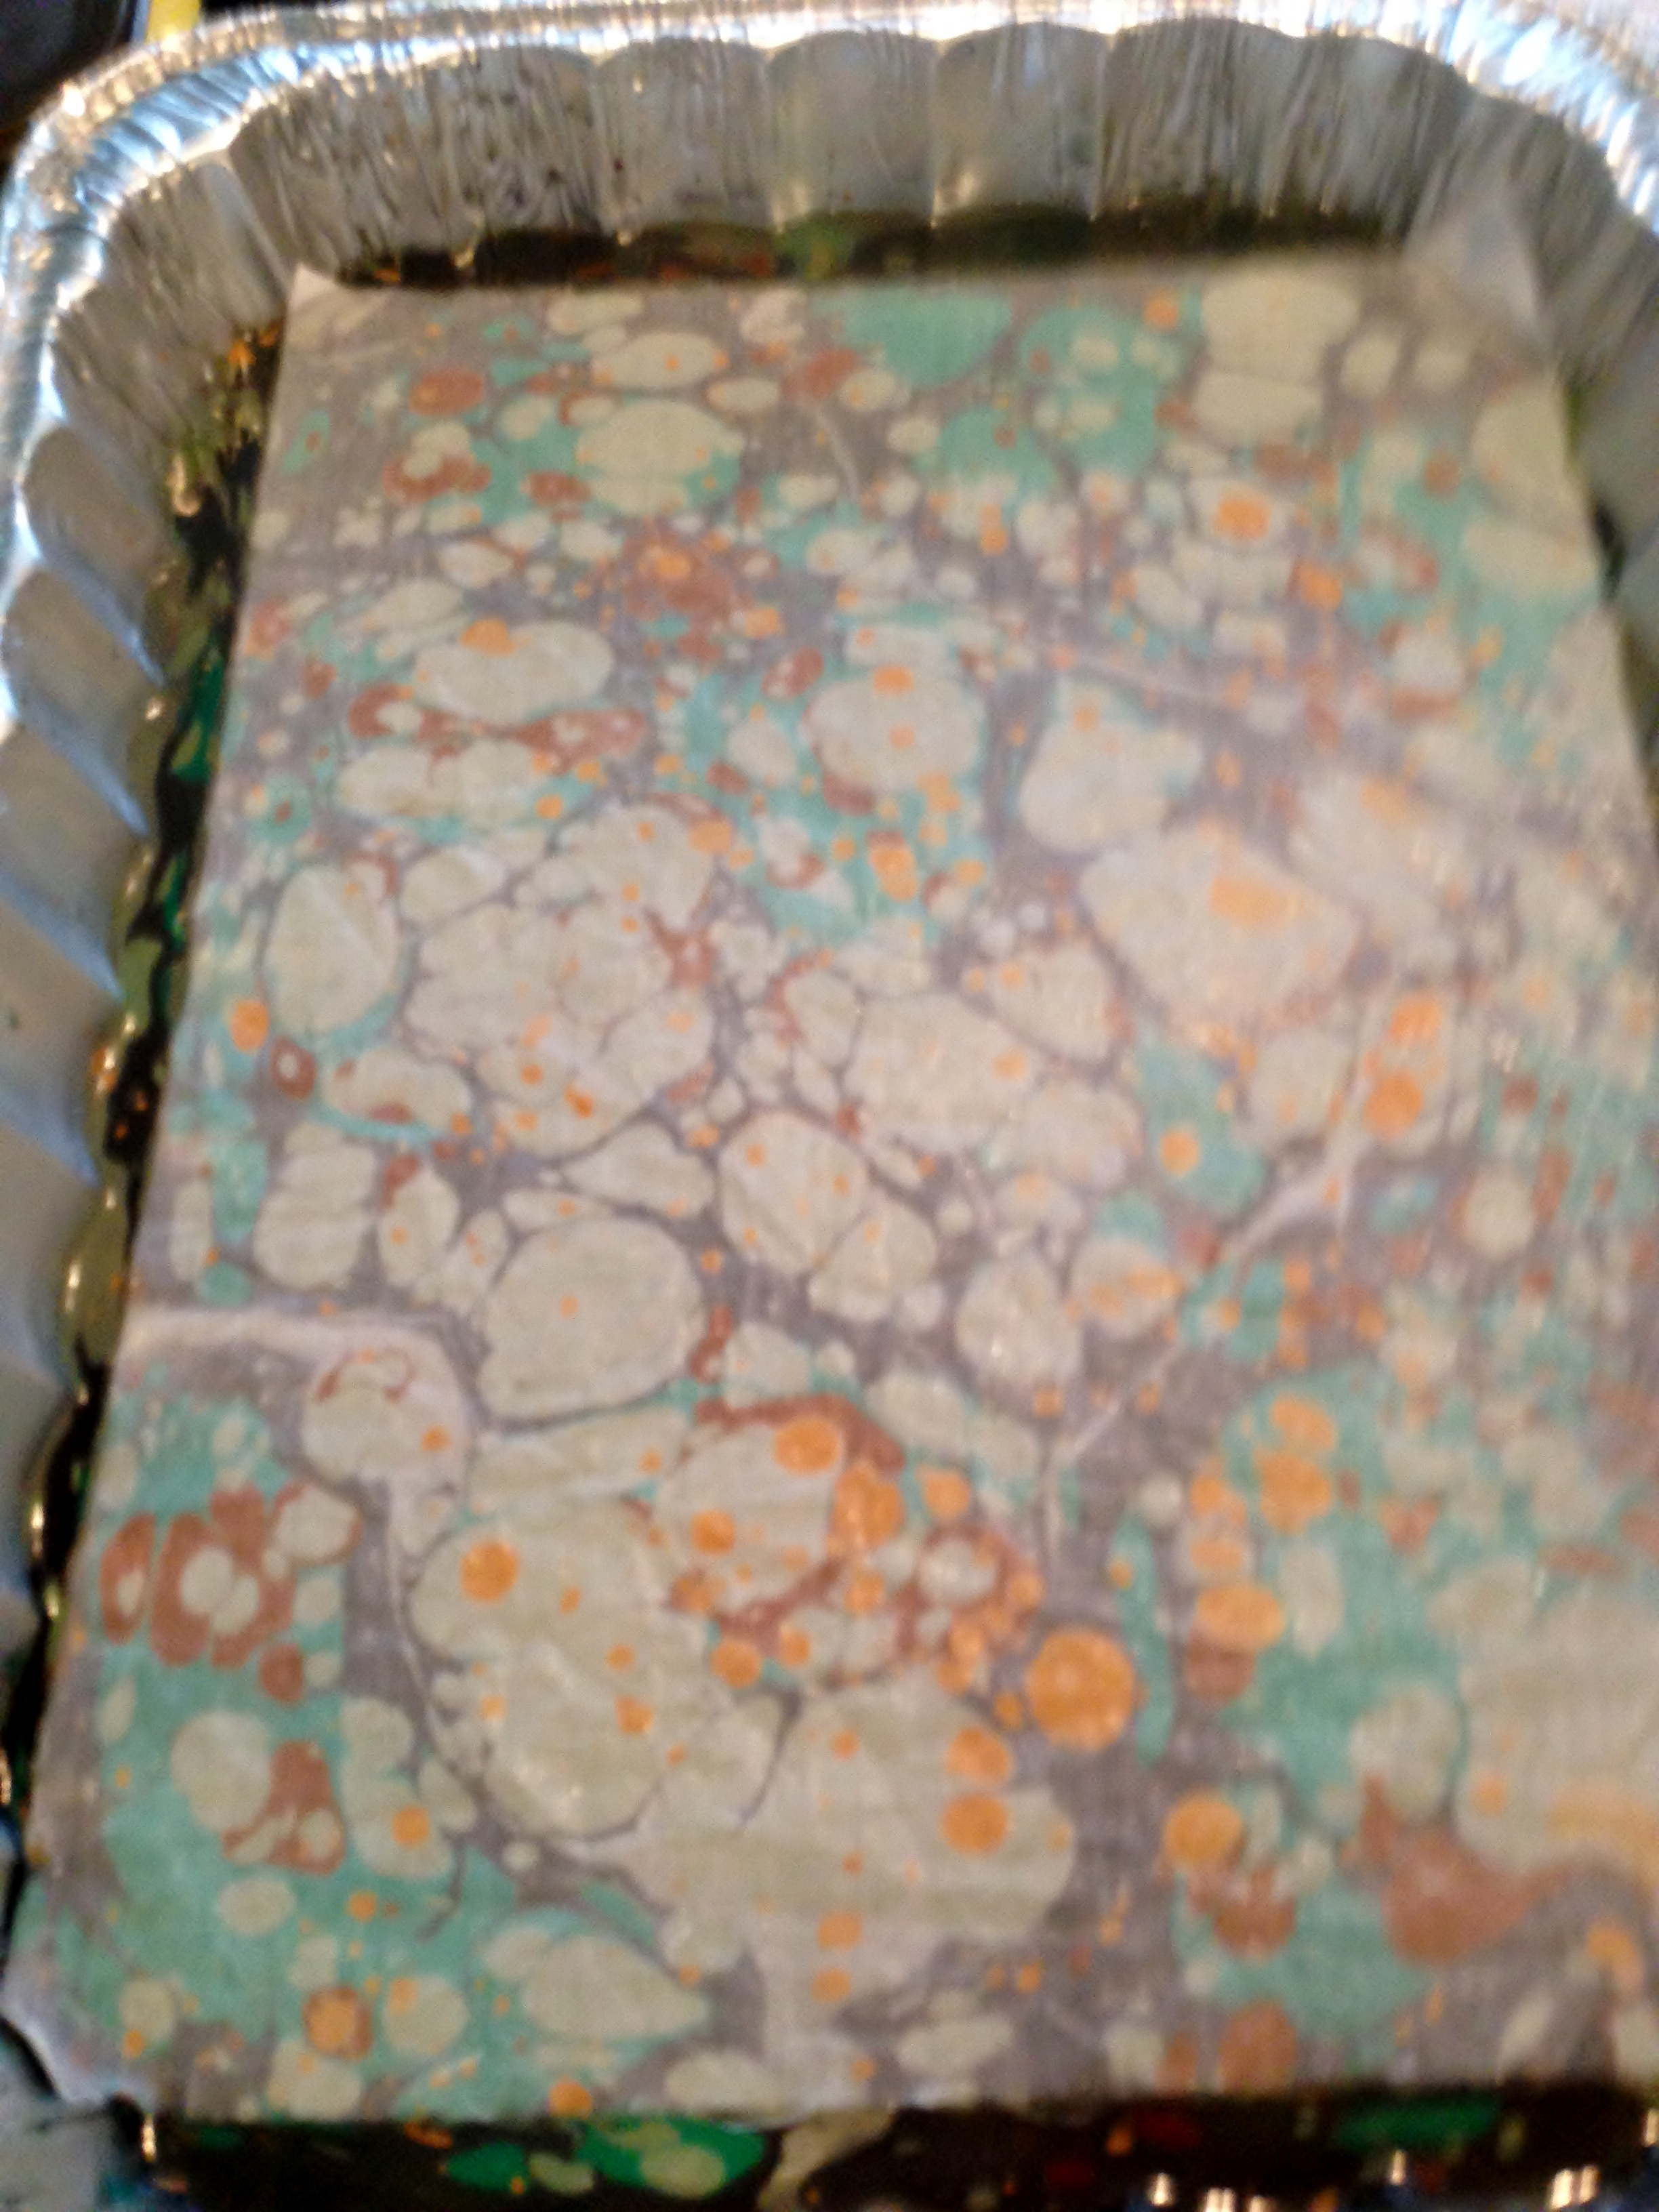 Fabric placed on top of paints